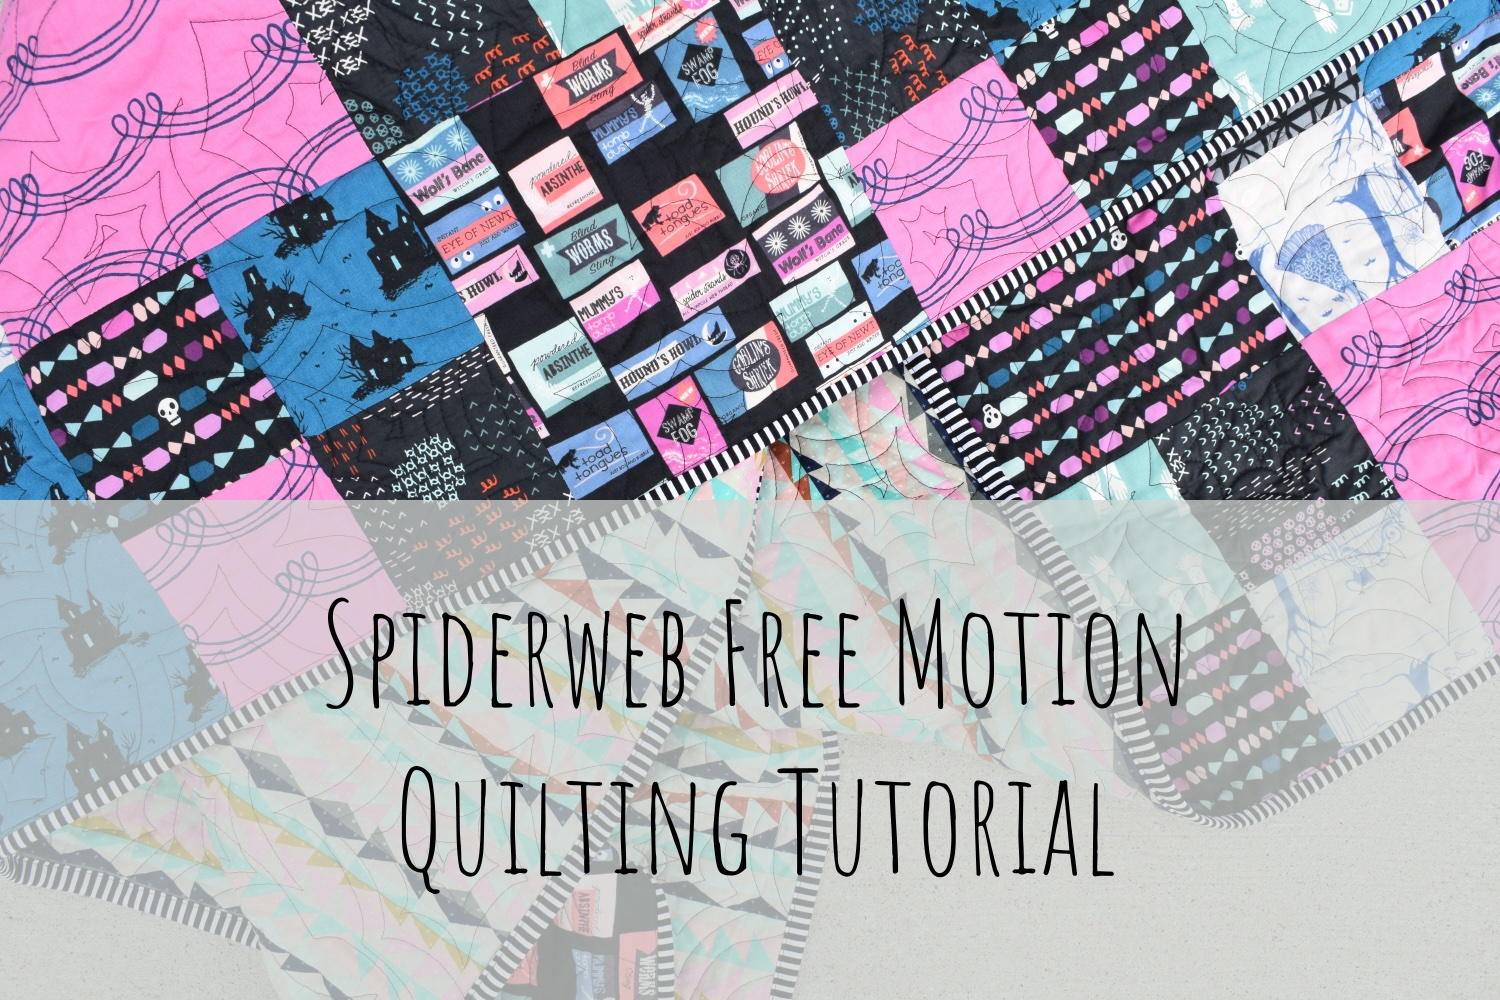 Spiderweb Free-motion quilting tutorial and a Halloween quilt